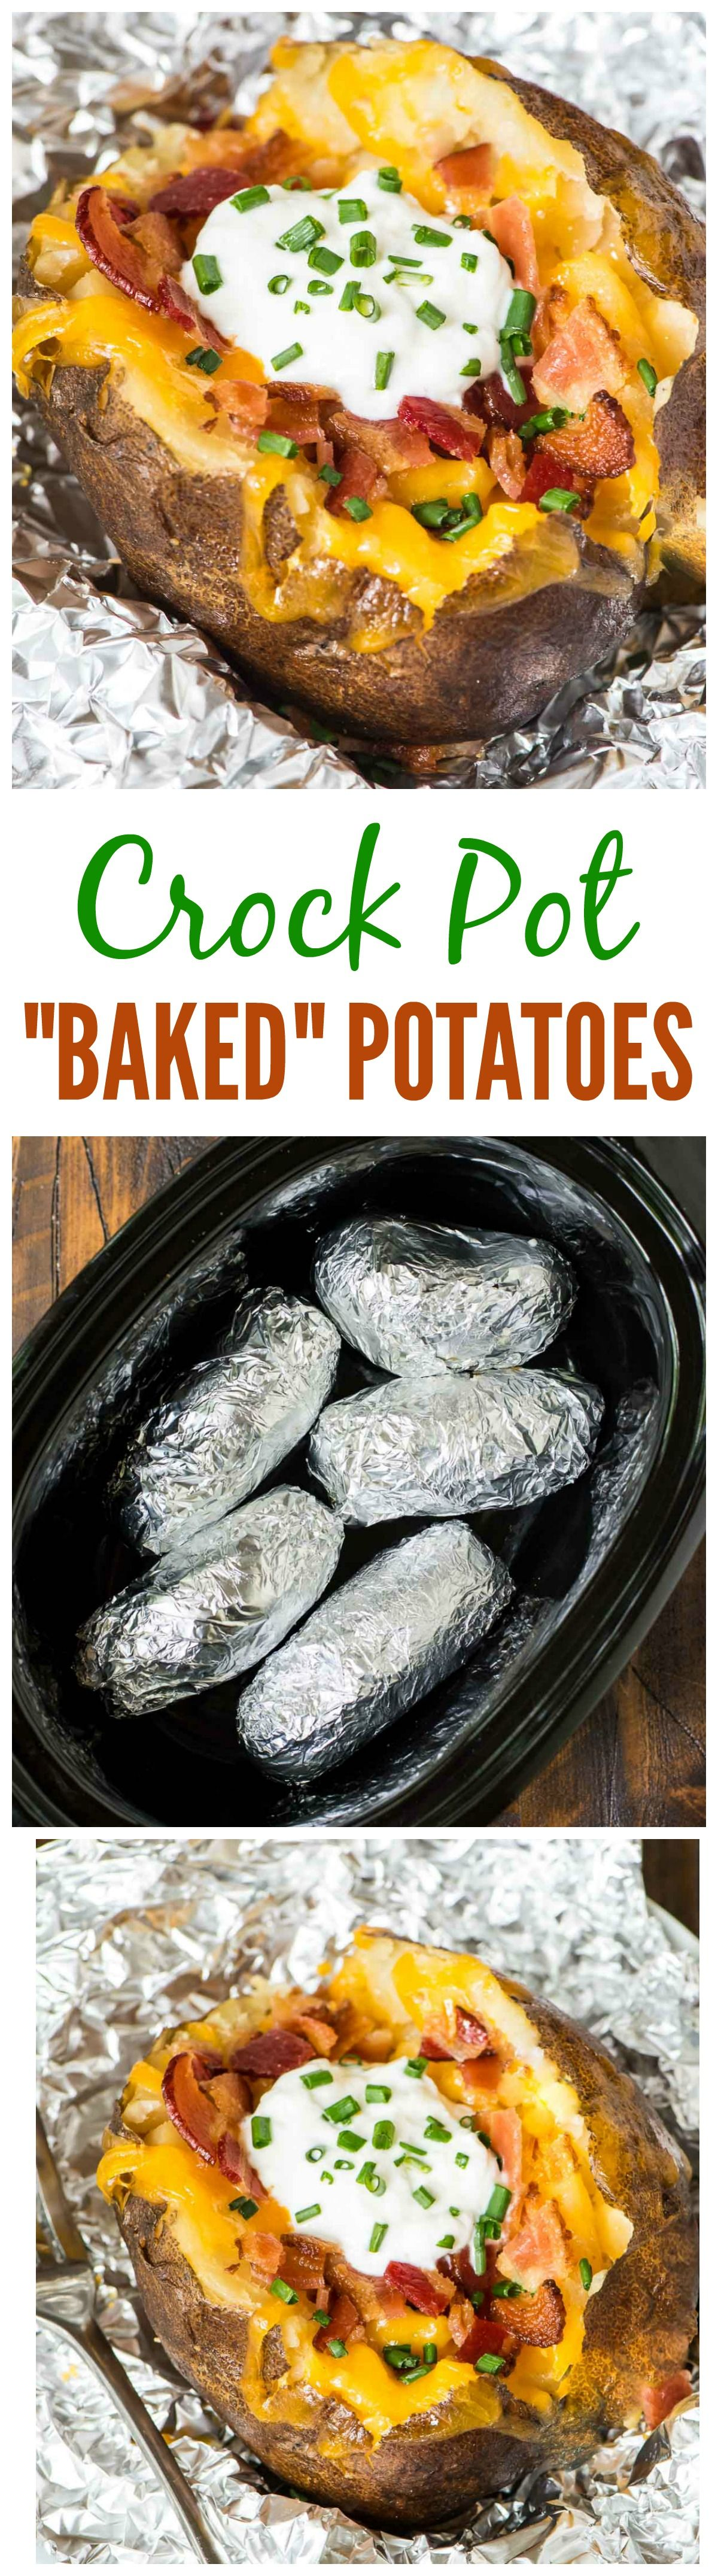 Crock Pot Baked Potatoes recipe. Awesome tailgate food idea! Can make ahead in the slow cooker for a football party or game day. No clean up and feeds a crowd!